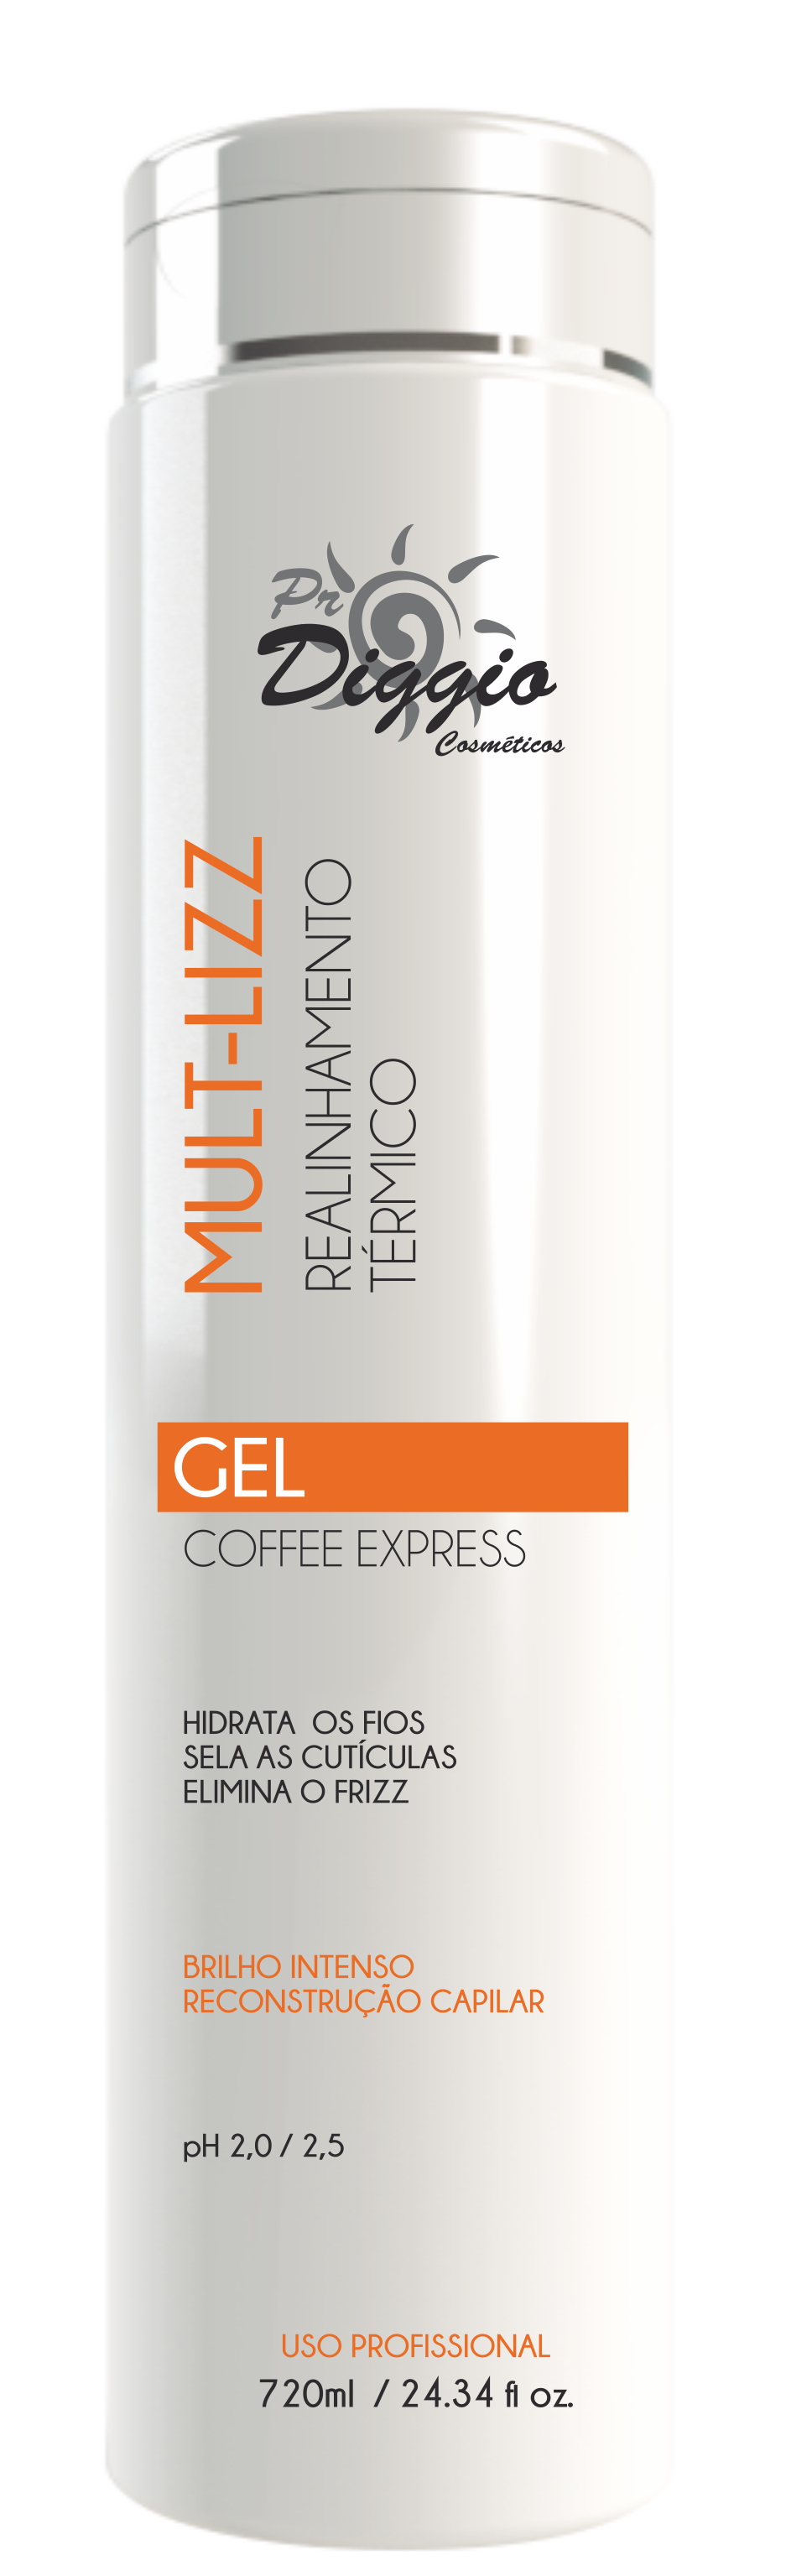 Gel Coffee